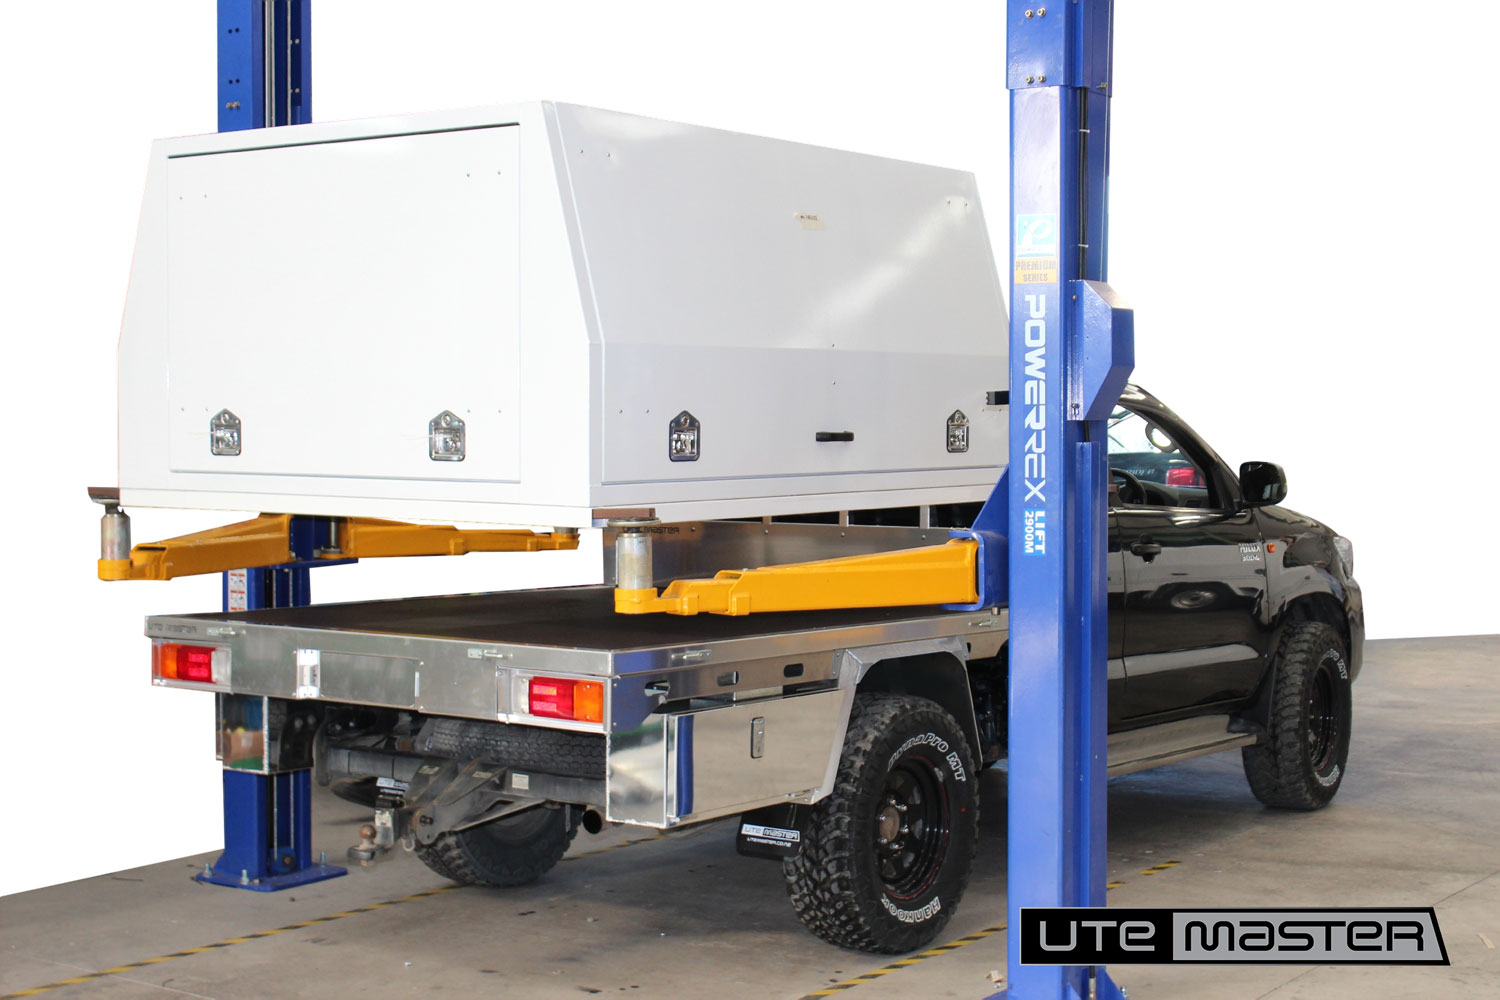 Flat Deck lift off Service Body Utemaster Commercial fitout box body